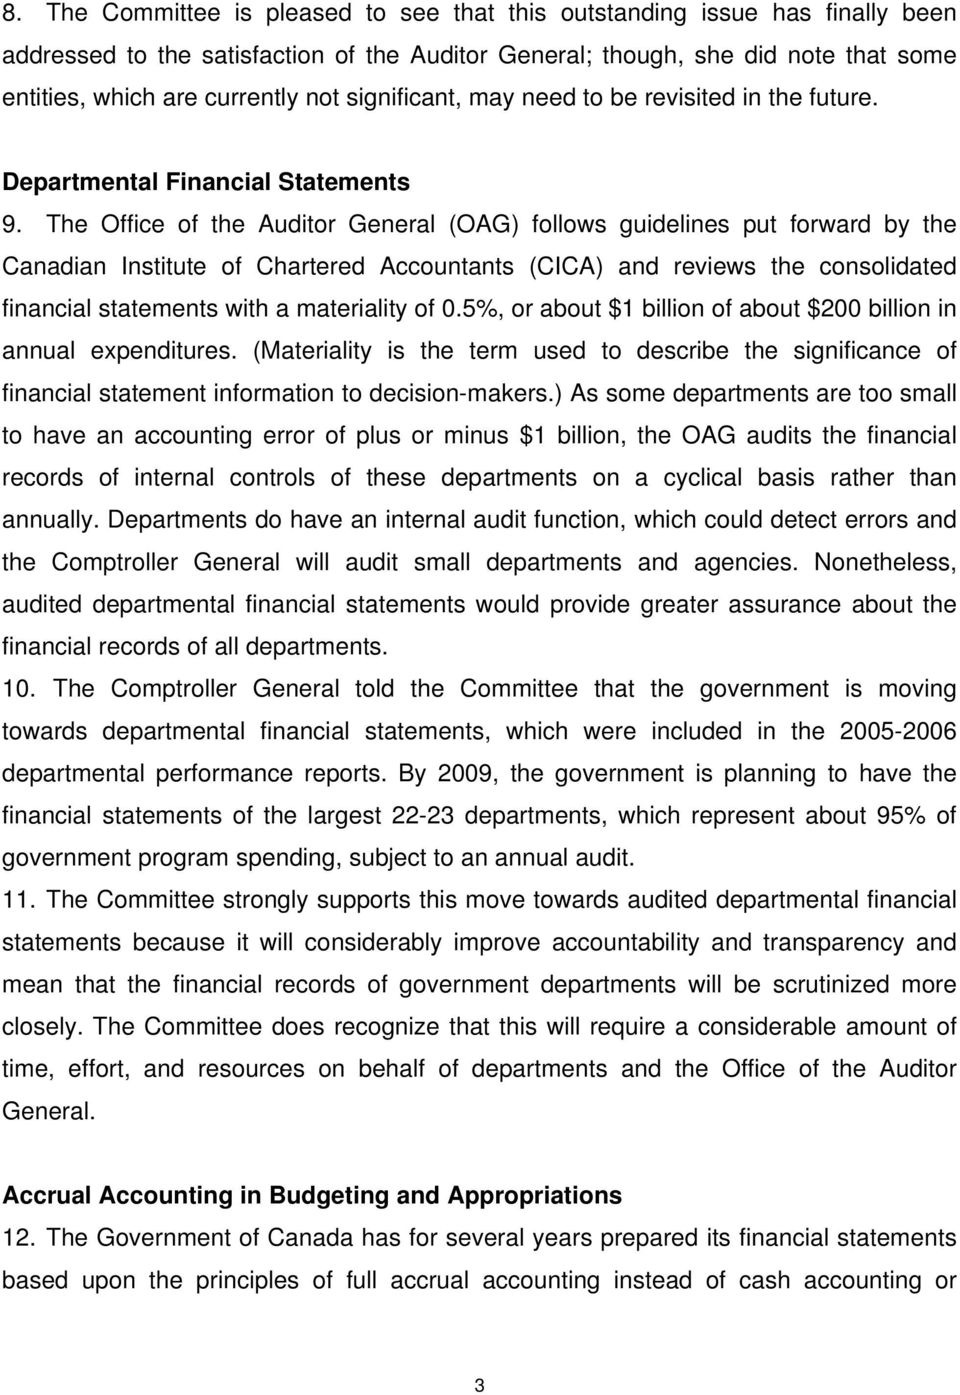 The Office of the Auditor General (OAG) follows guidelines put forward by the Canadian Institute of Chartered Accountants (CICA) and reviews the consolidated financial statements with a materiality